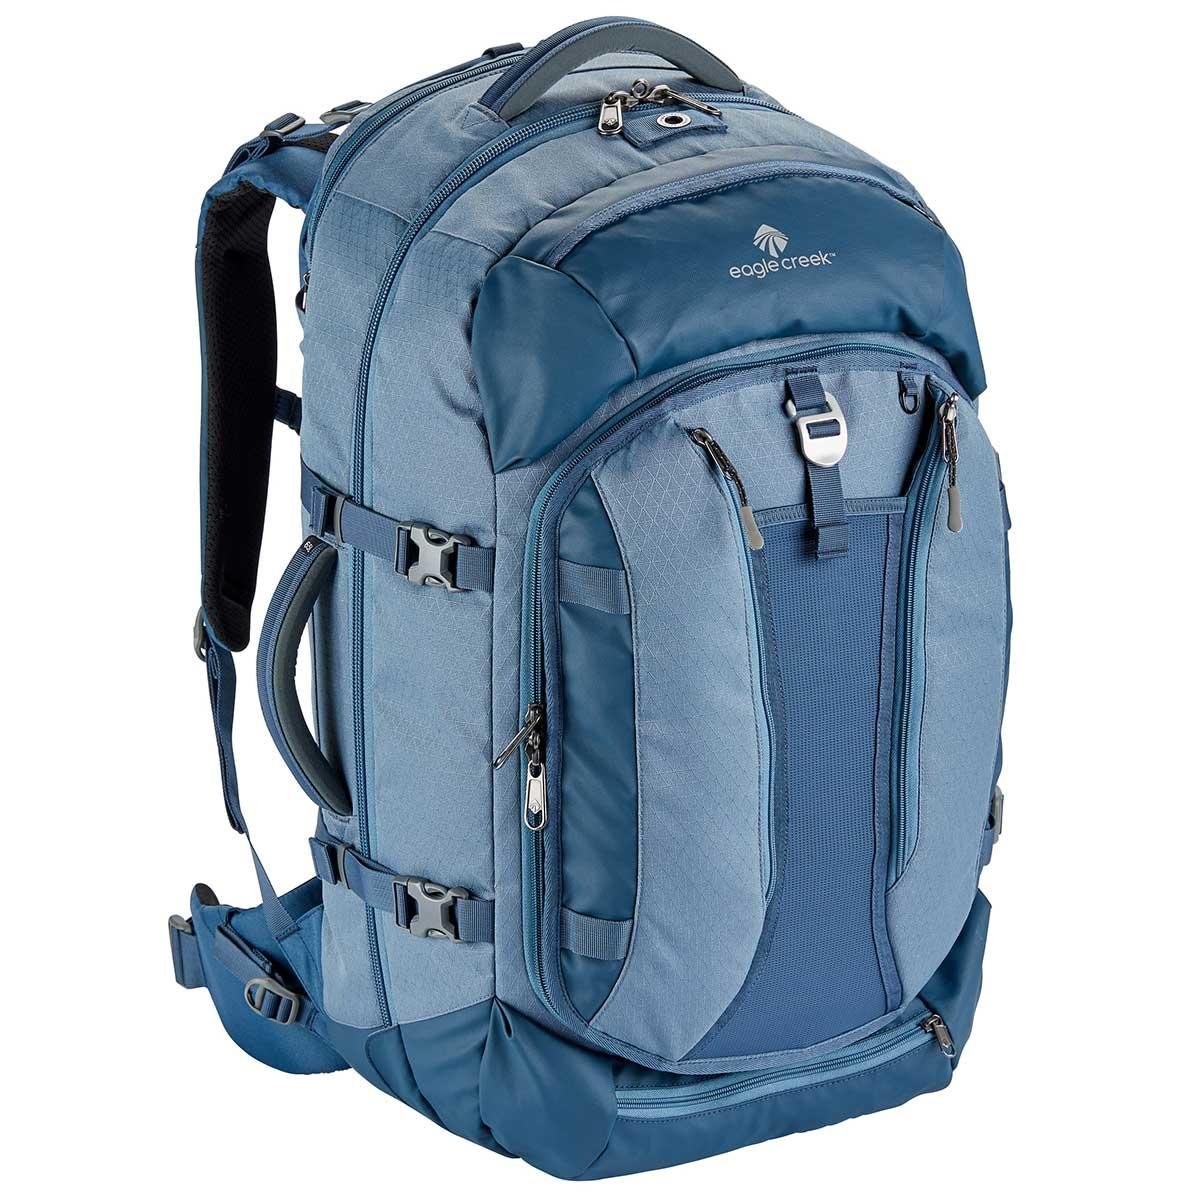 Eagle Creek Global Companion 65L Backpack in Smokey Blue